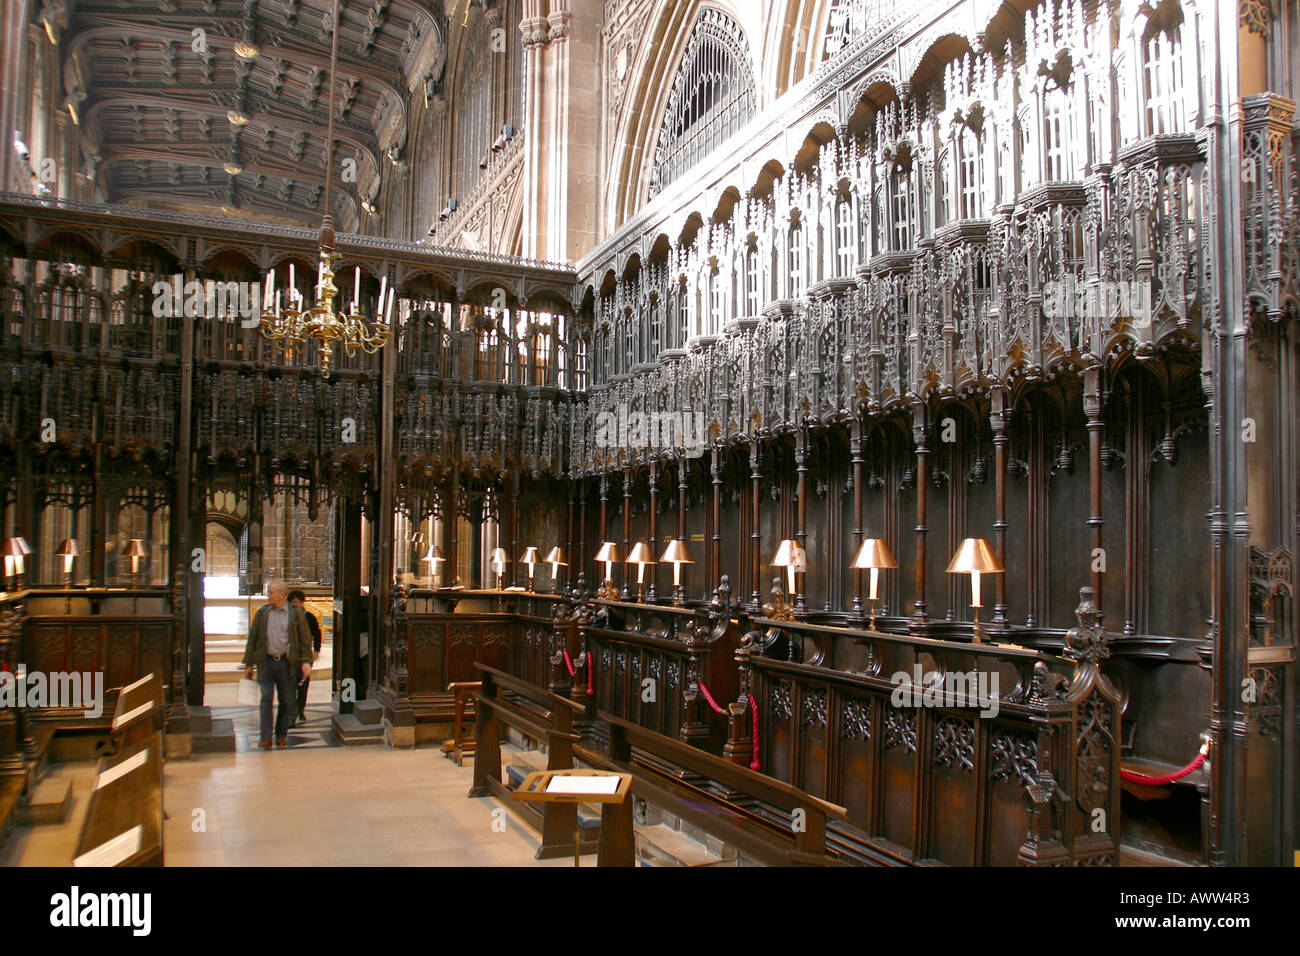 Manchester Millennium Quarter Cathedral the Quire carved wooden architecture - Stock Image